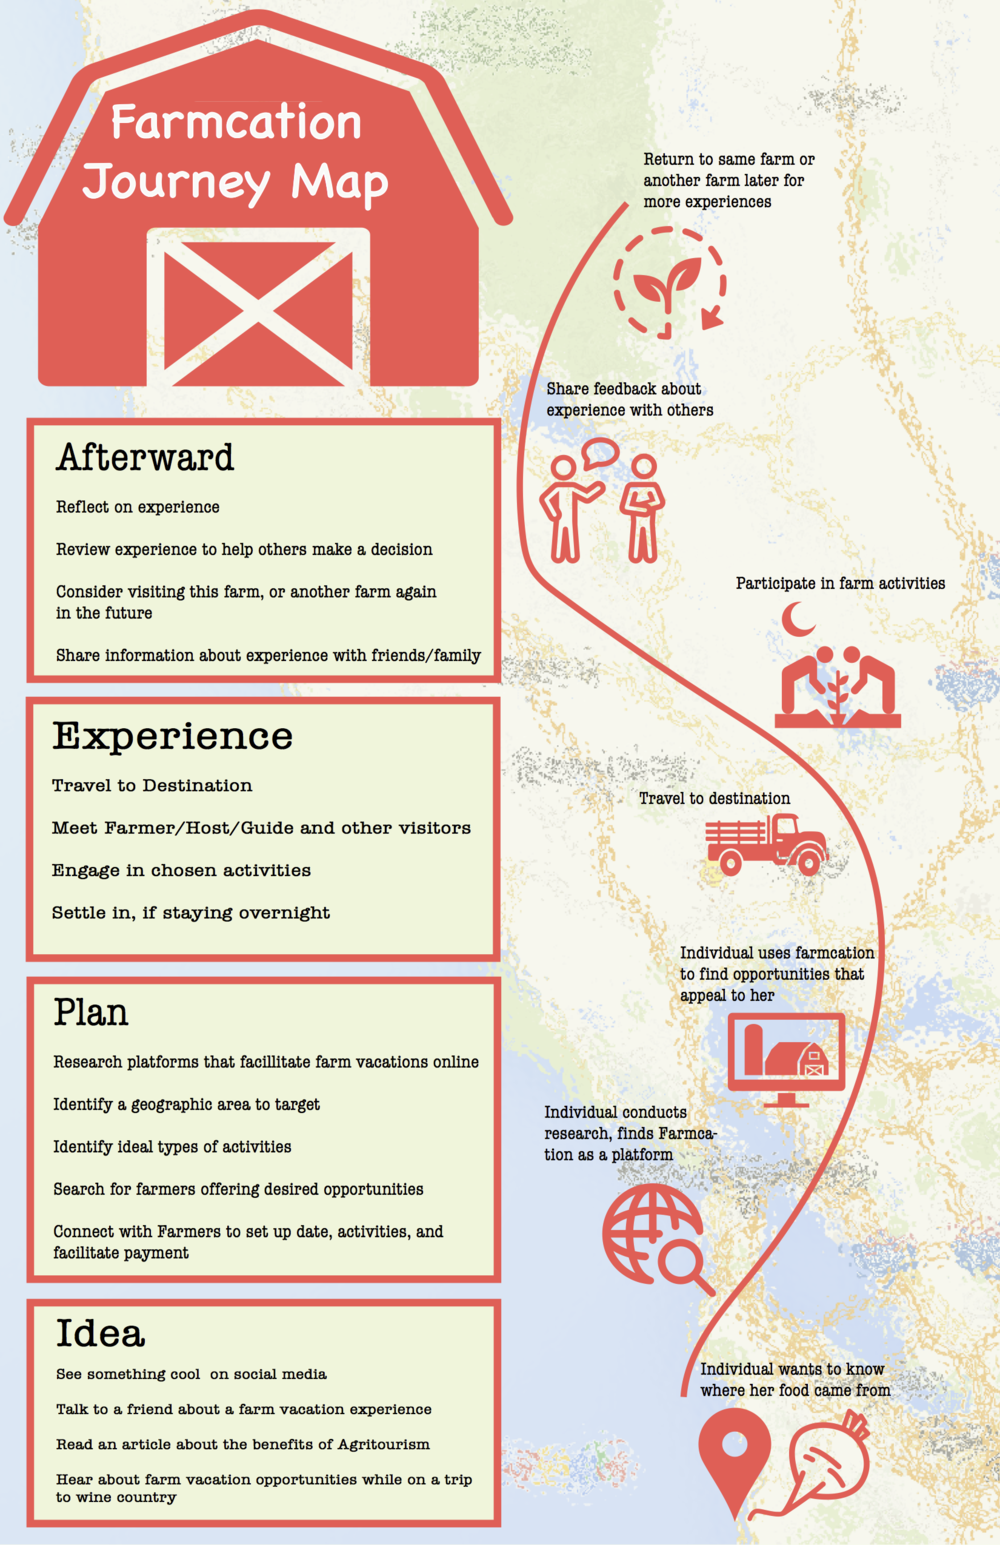 Journey Map based on customer interviews